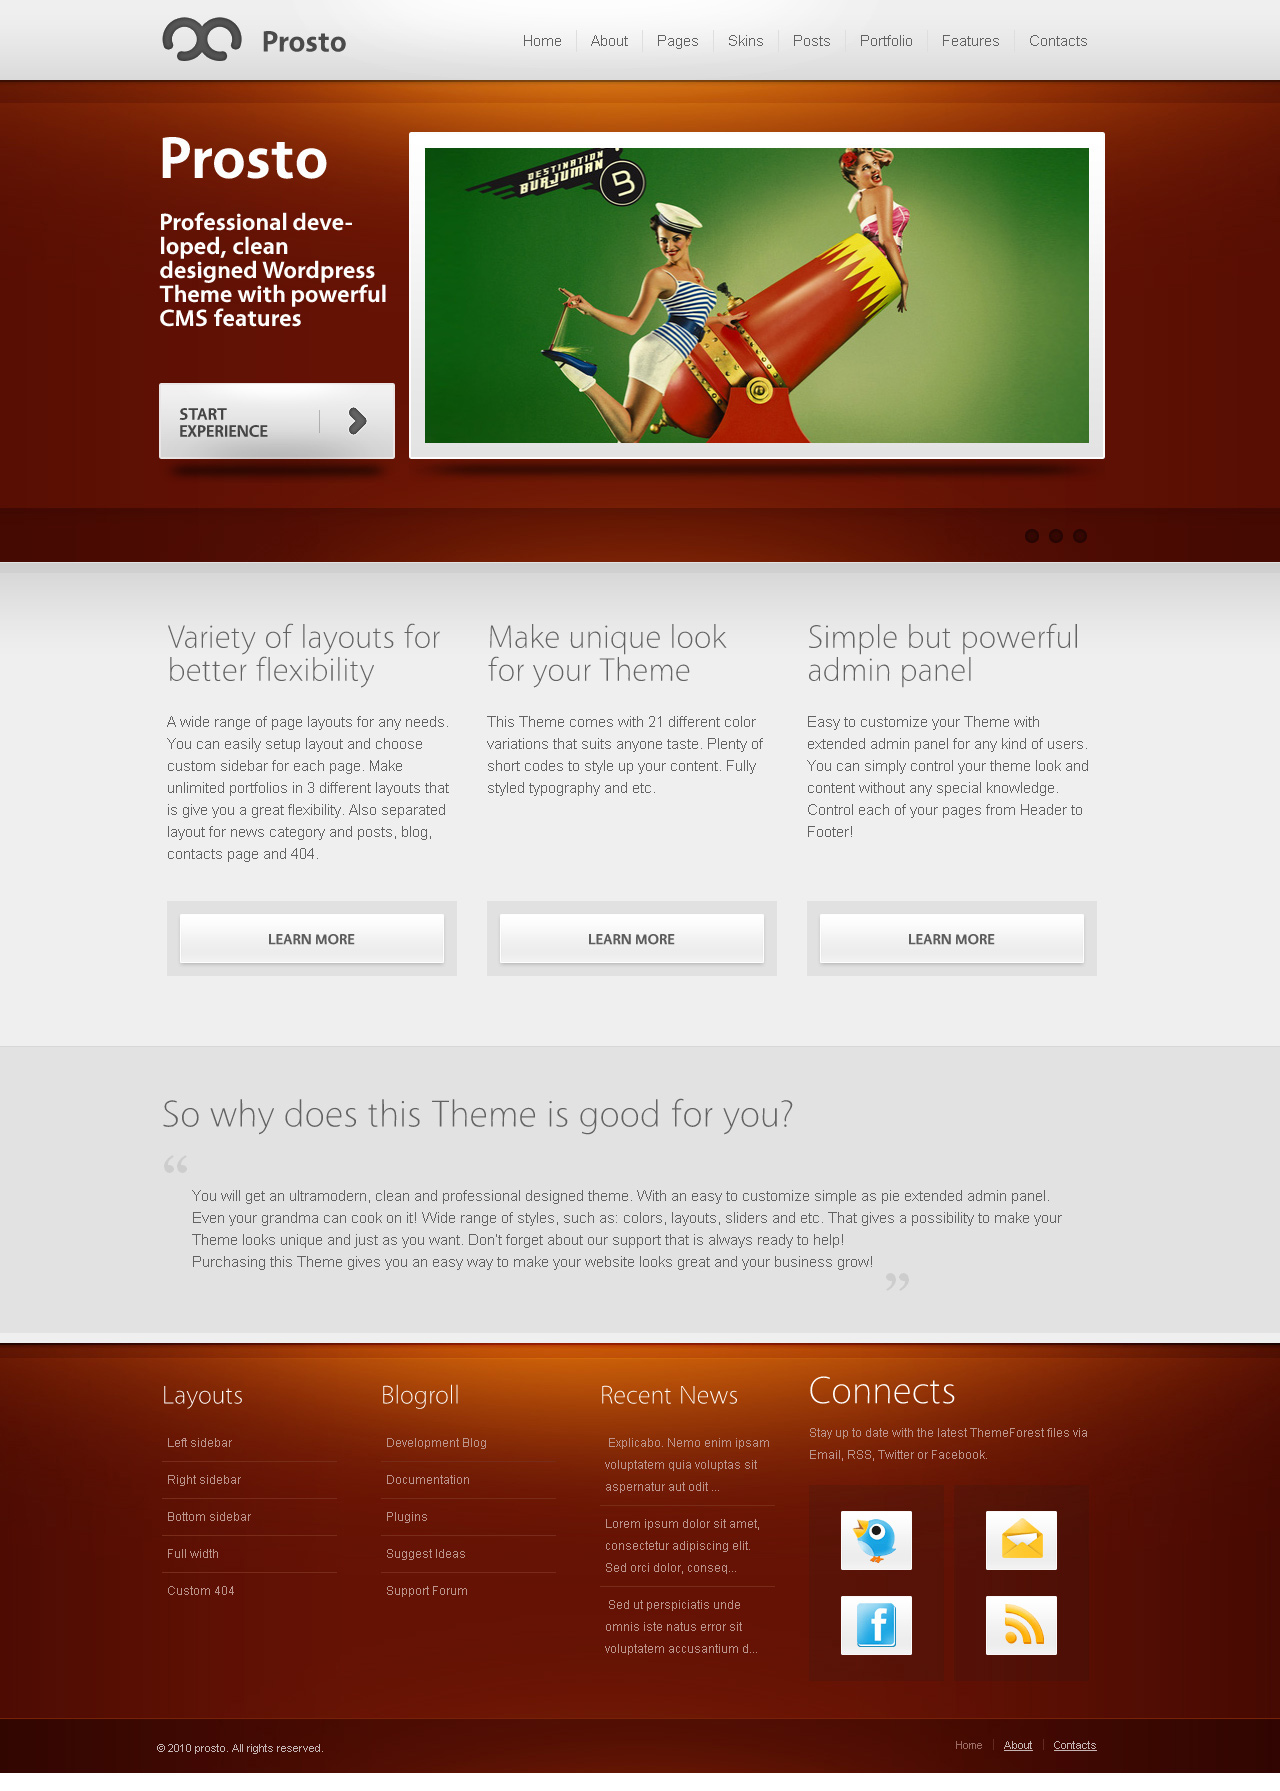 prosto business portfolio cms wordpress theme by olegnax